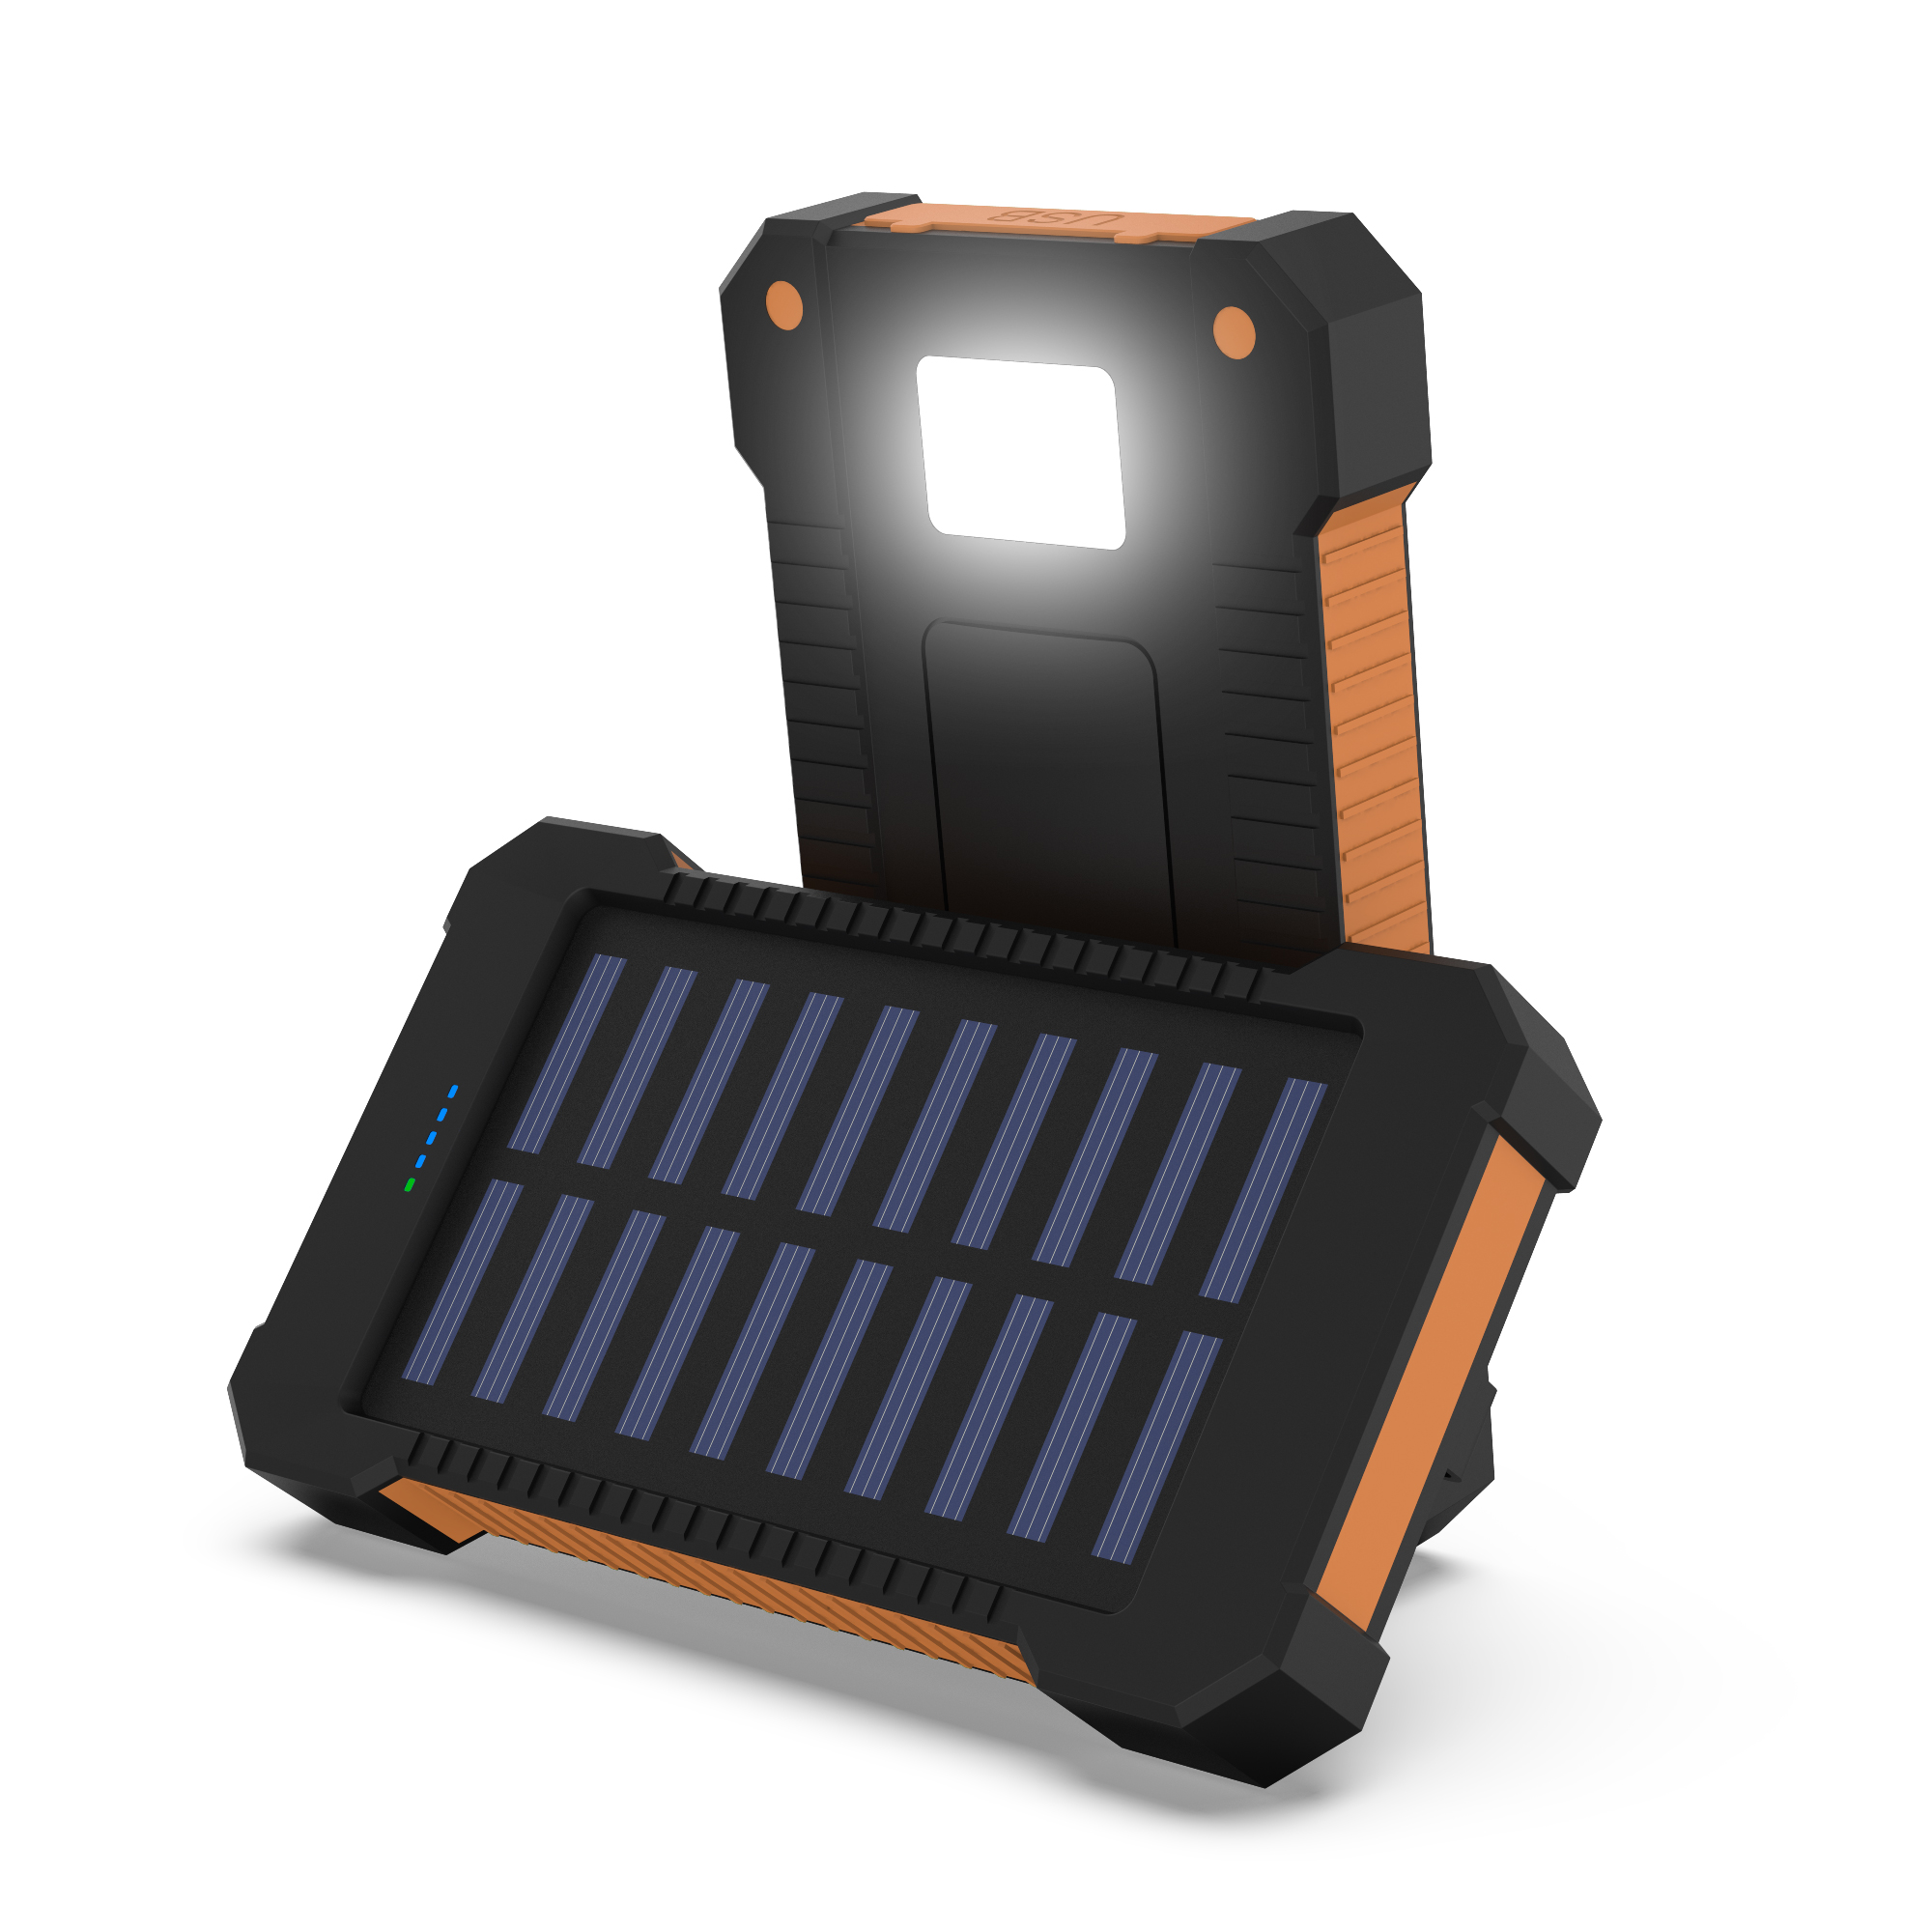 Details about 300000/100000mAh Solar Power Bank Dual USB Portable Charger Battery Backup LED